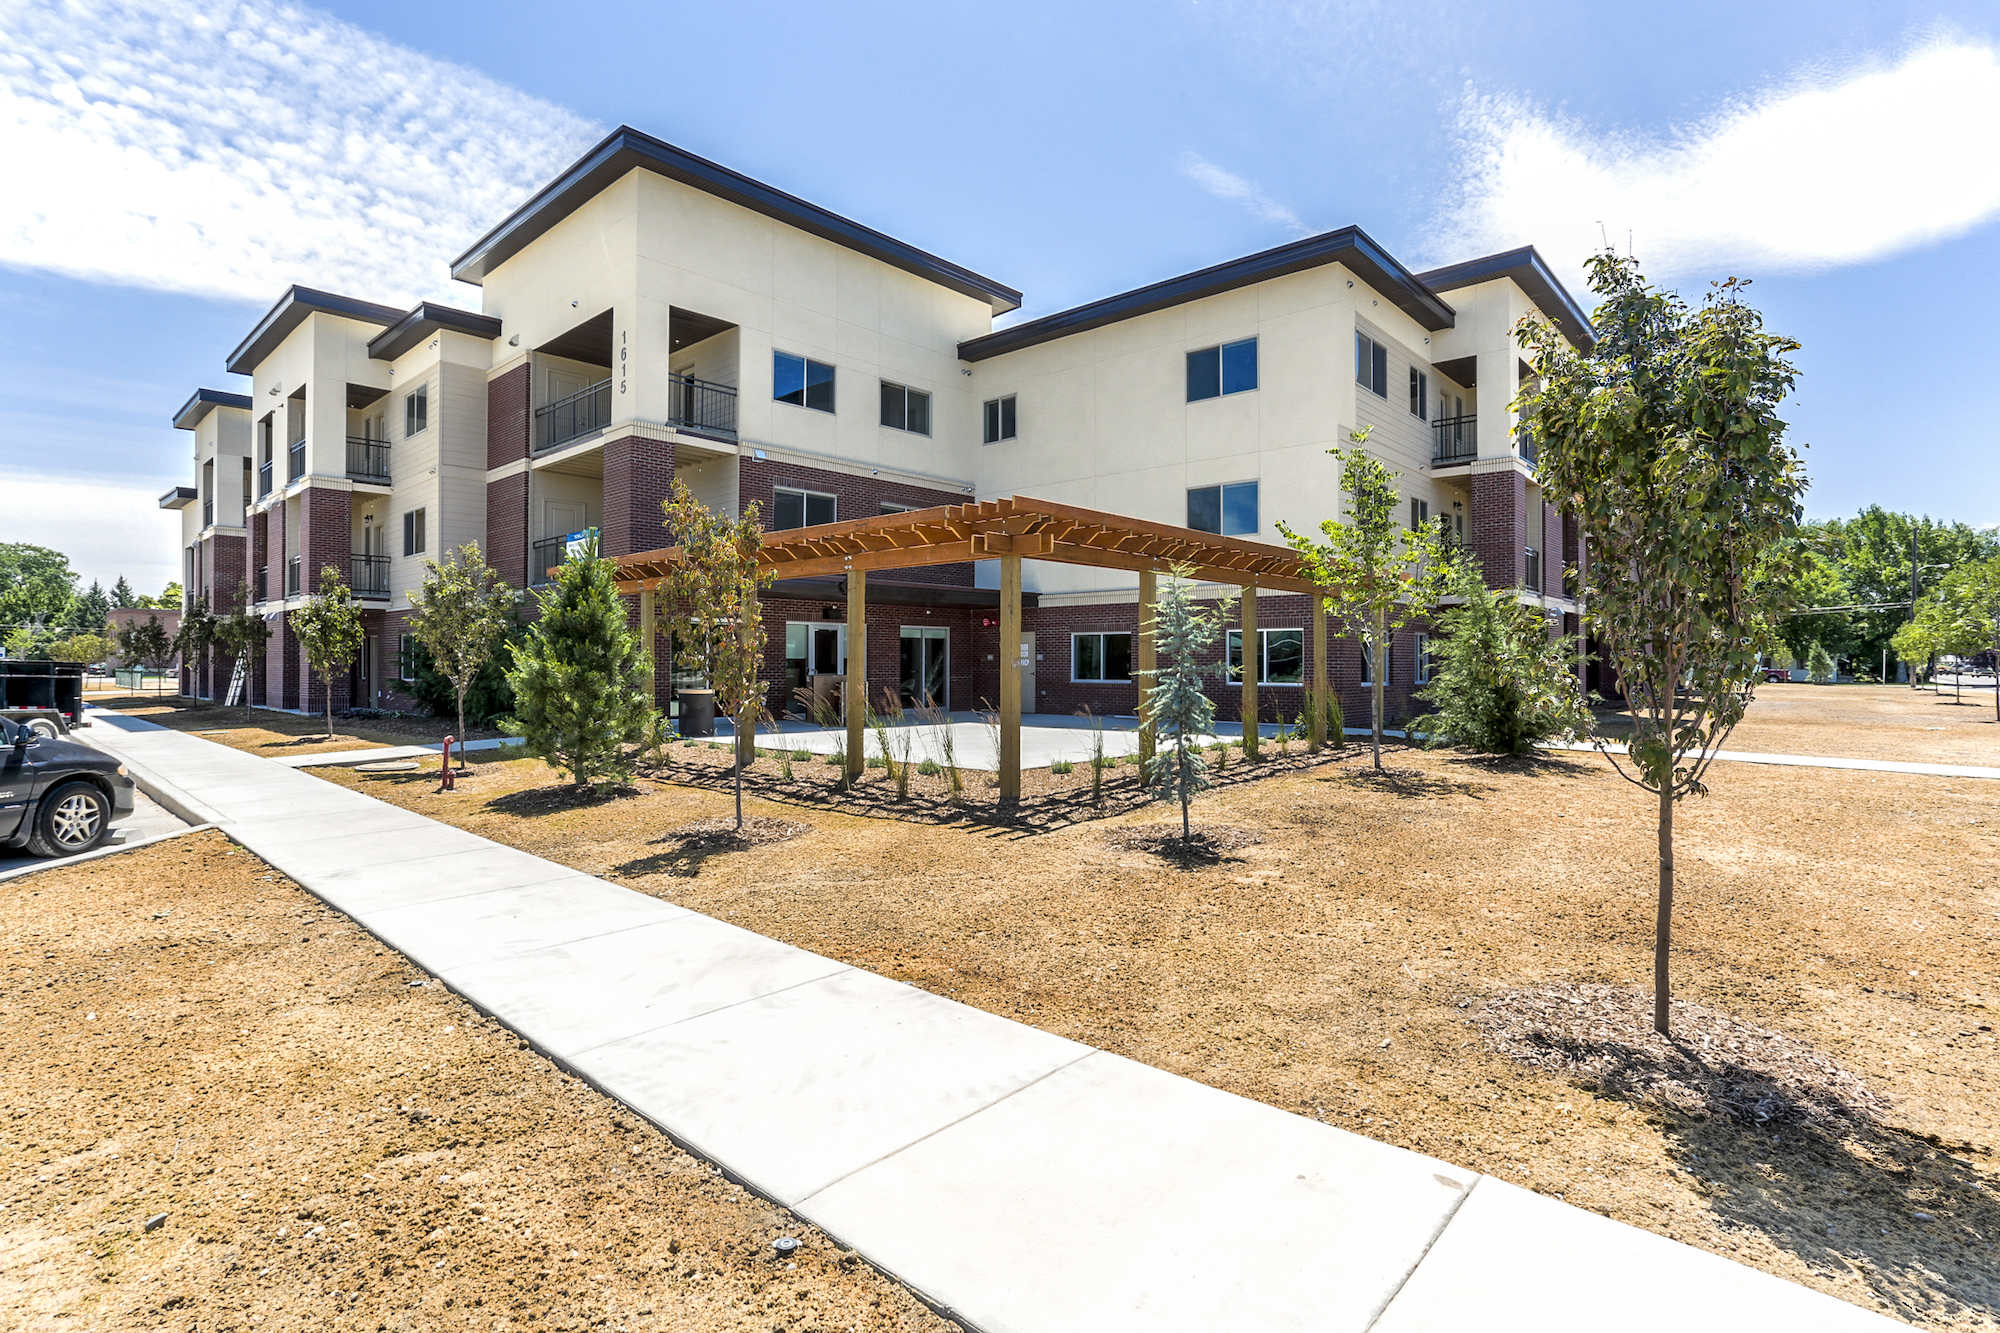 Affordable Senior Housing Construction Continues In Nampa